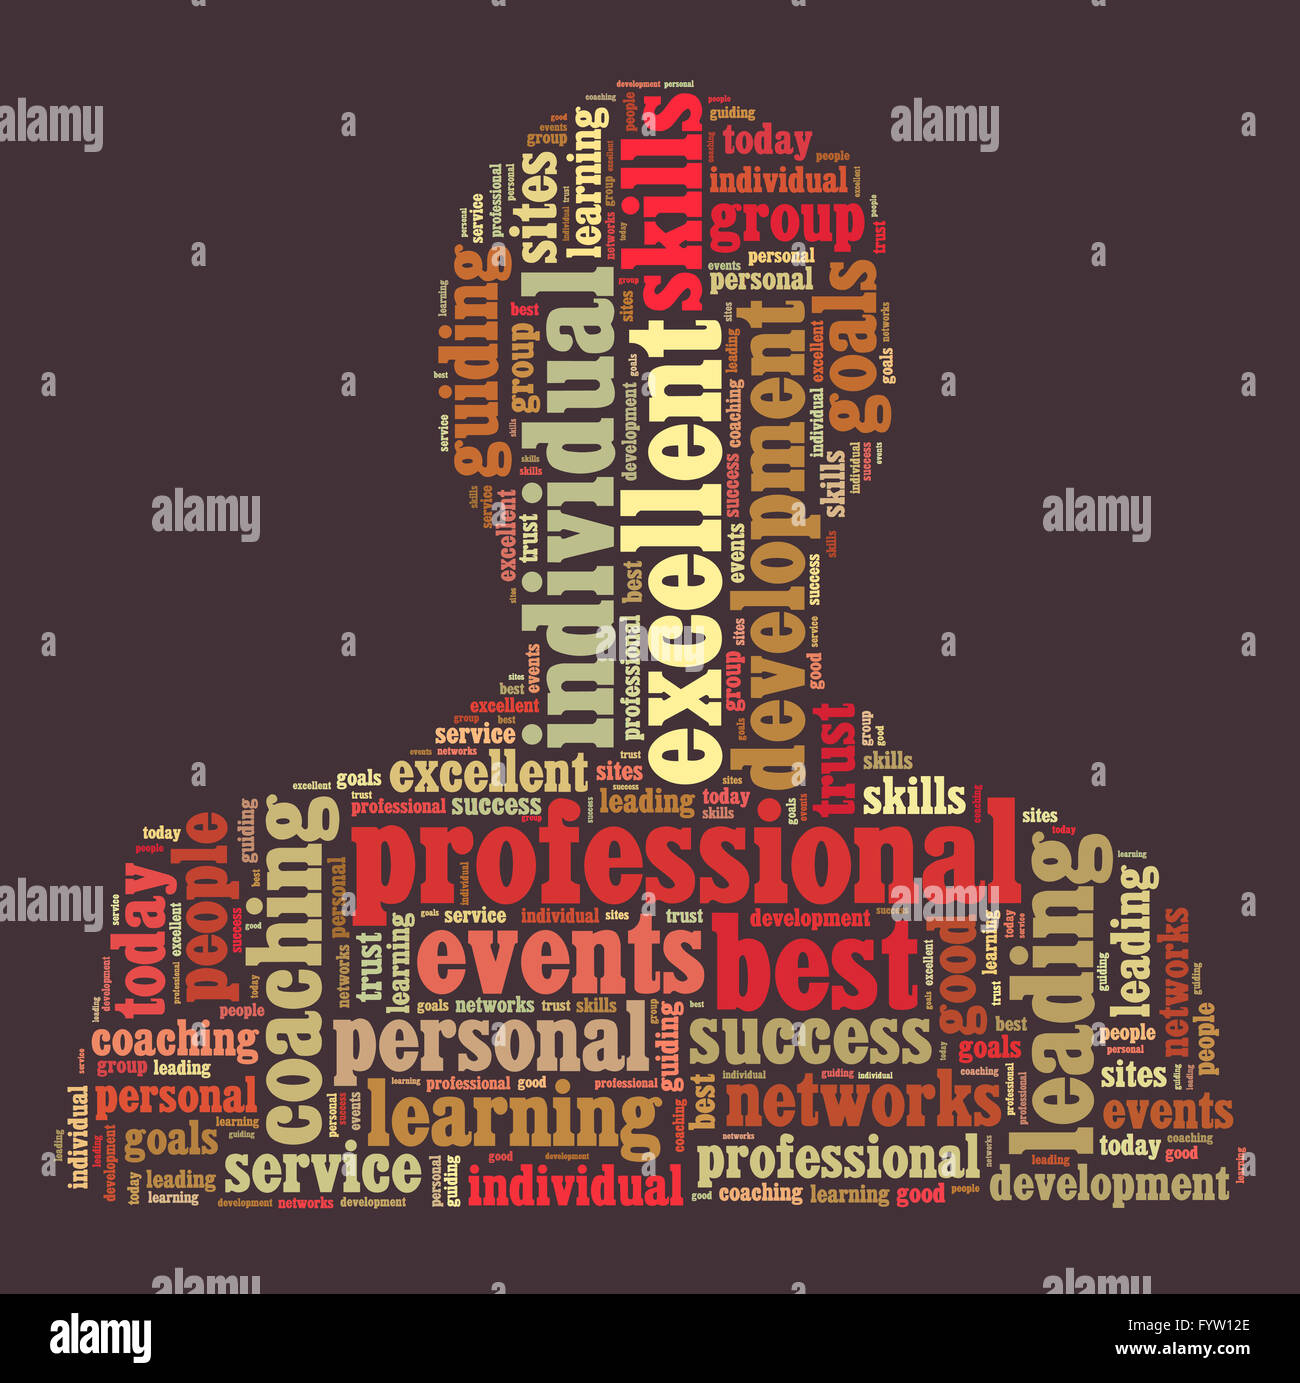 Professional word cloud shaped as a person - Stock Image